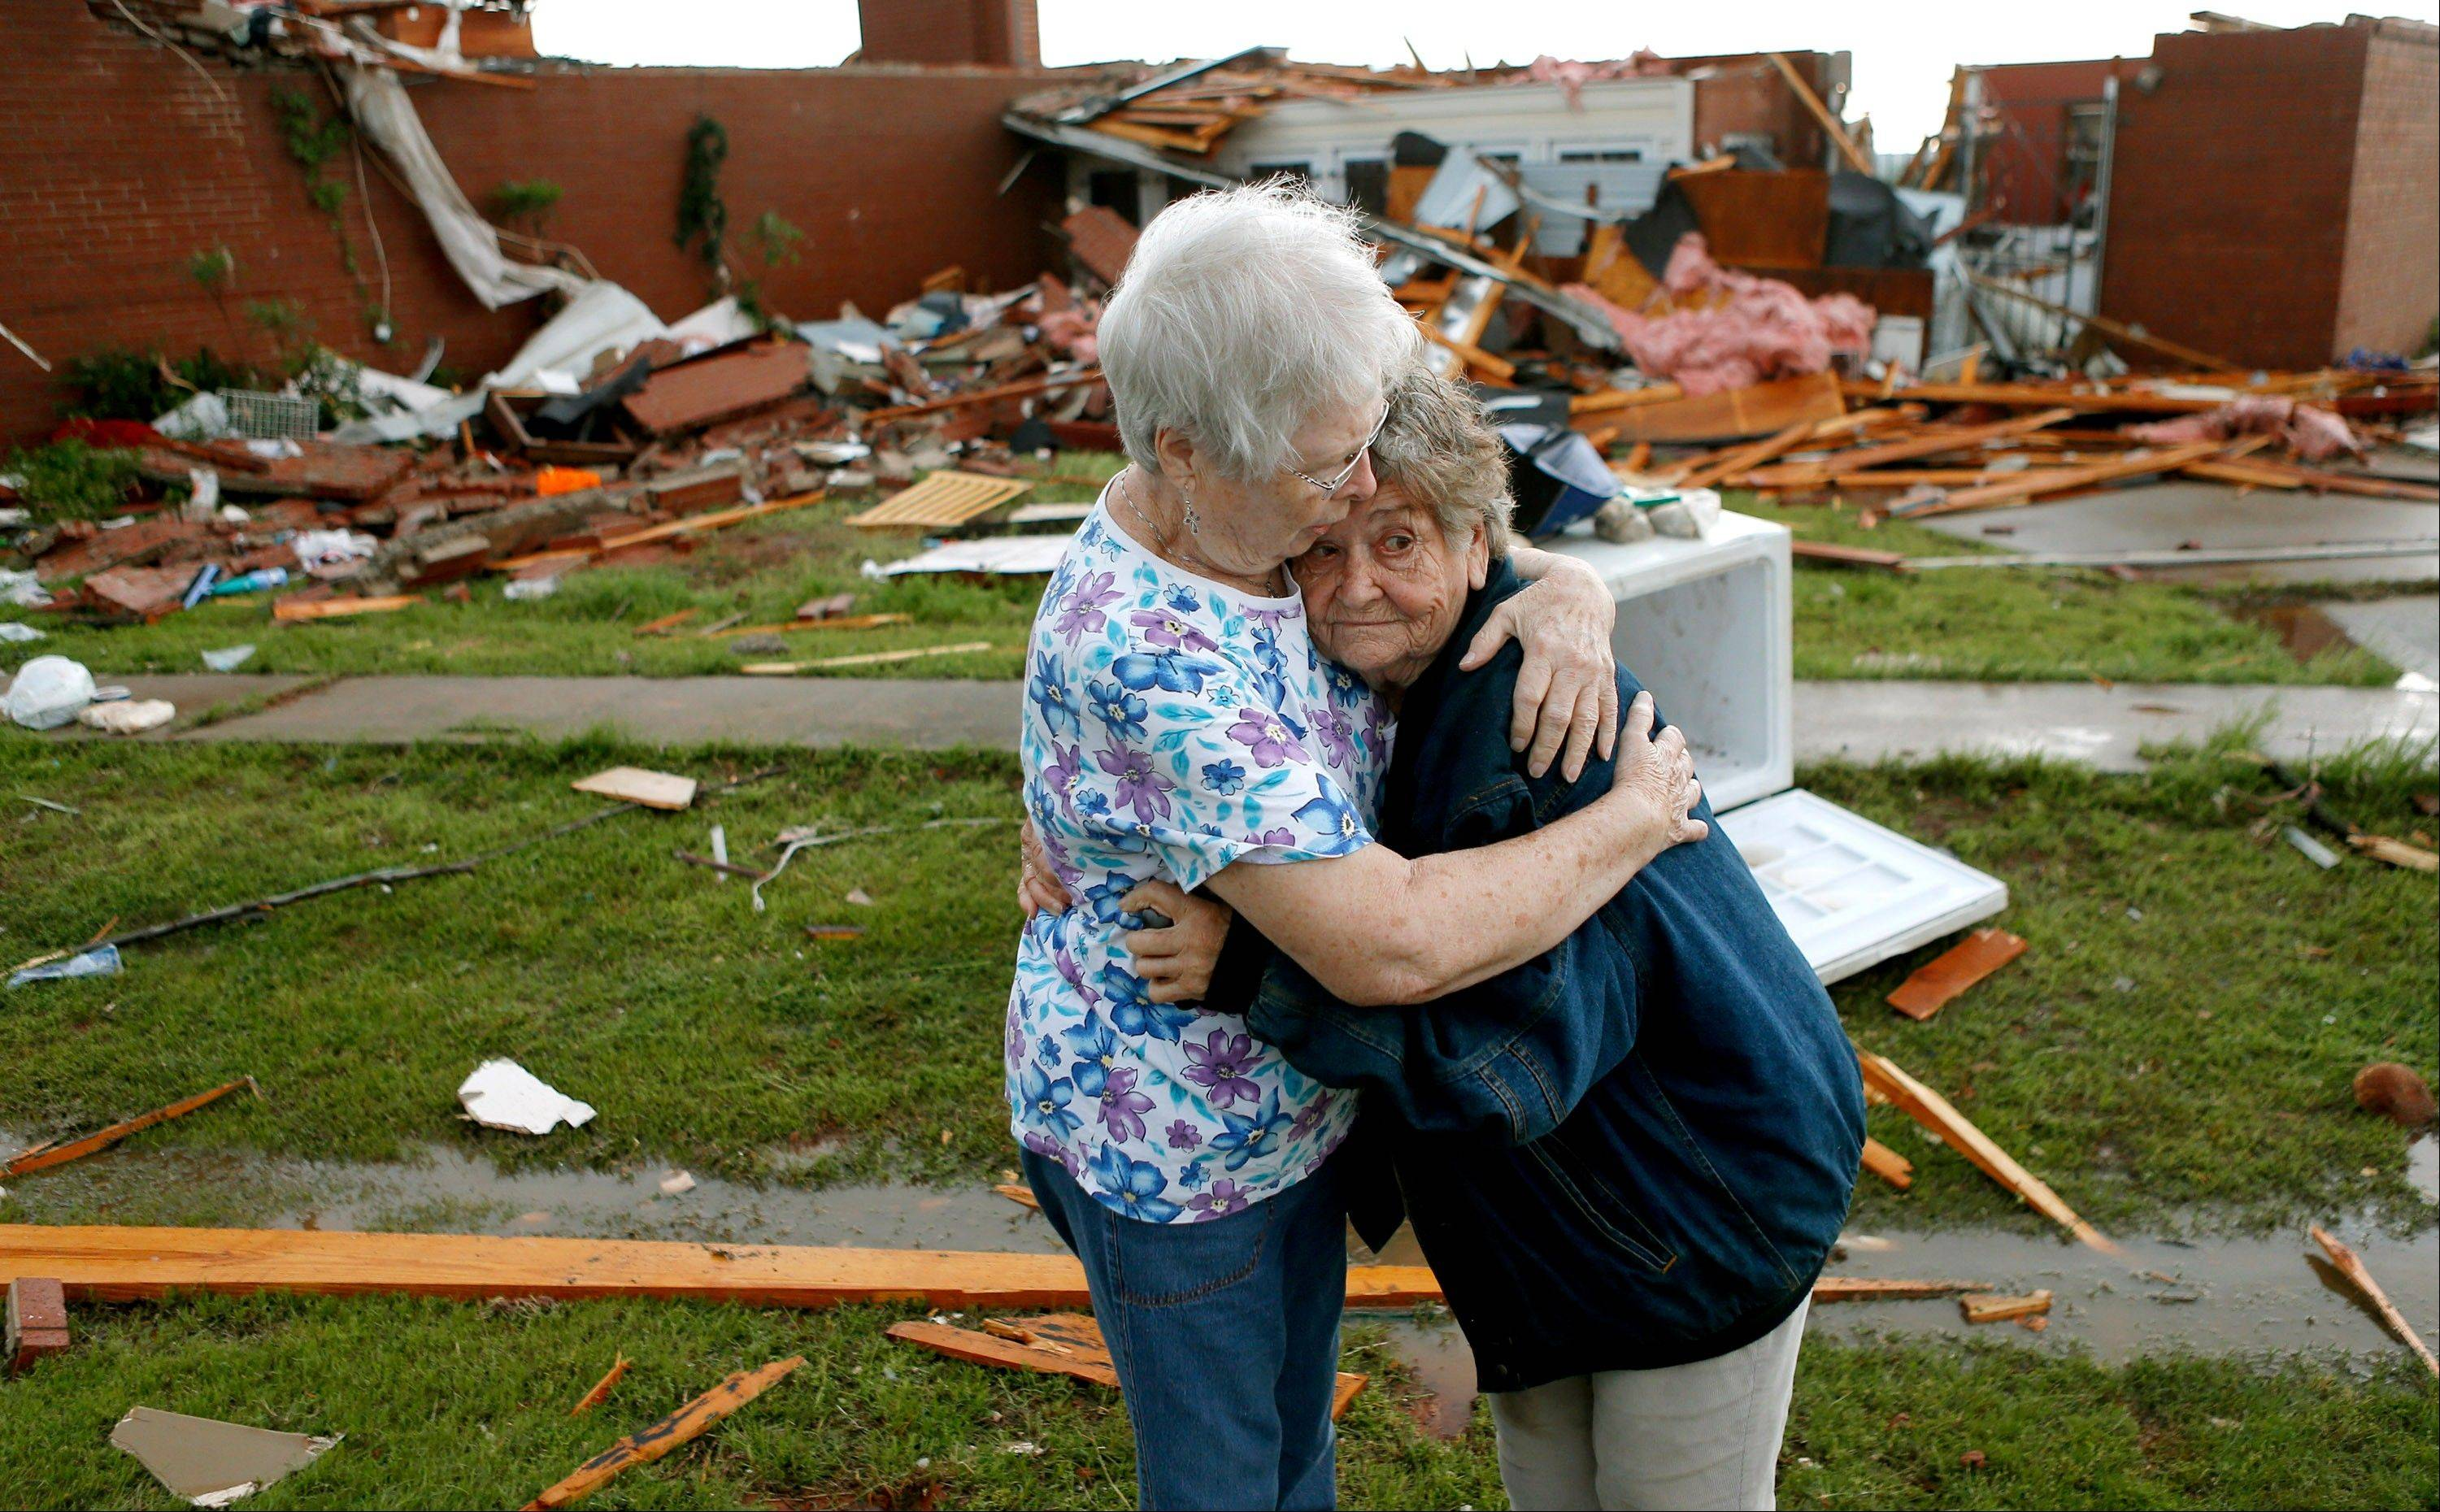 Jerry Dirks, at right, hugs her friend Earlene Langley after a tornado hit Driks' home just south of Carney Okla., on Sunday, May 19, 2013. Dirks was in her cellar at the time the tornado hit.